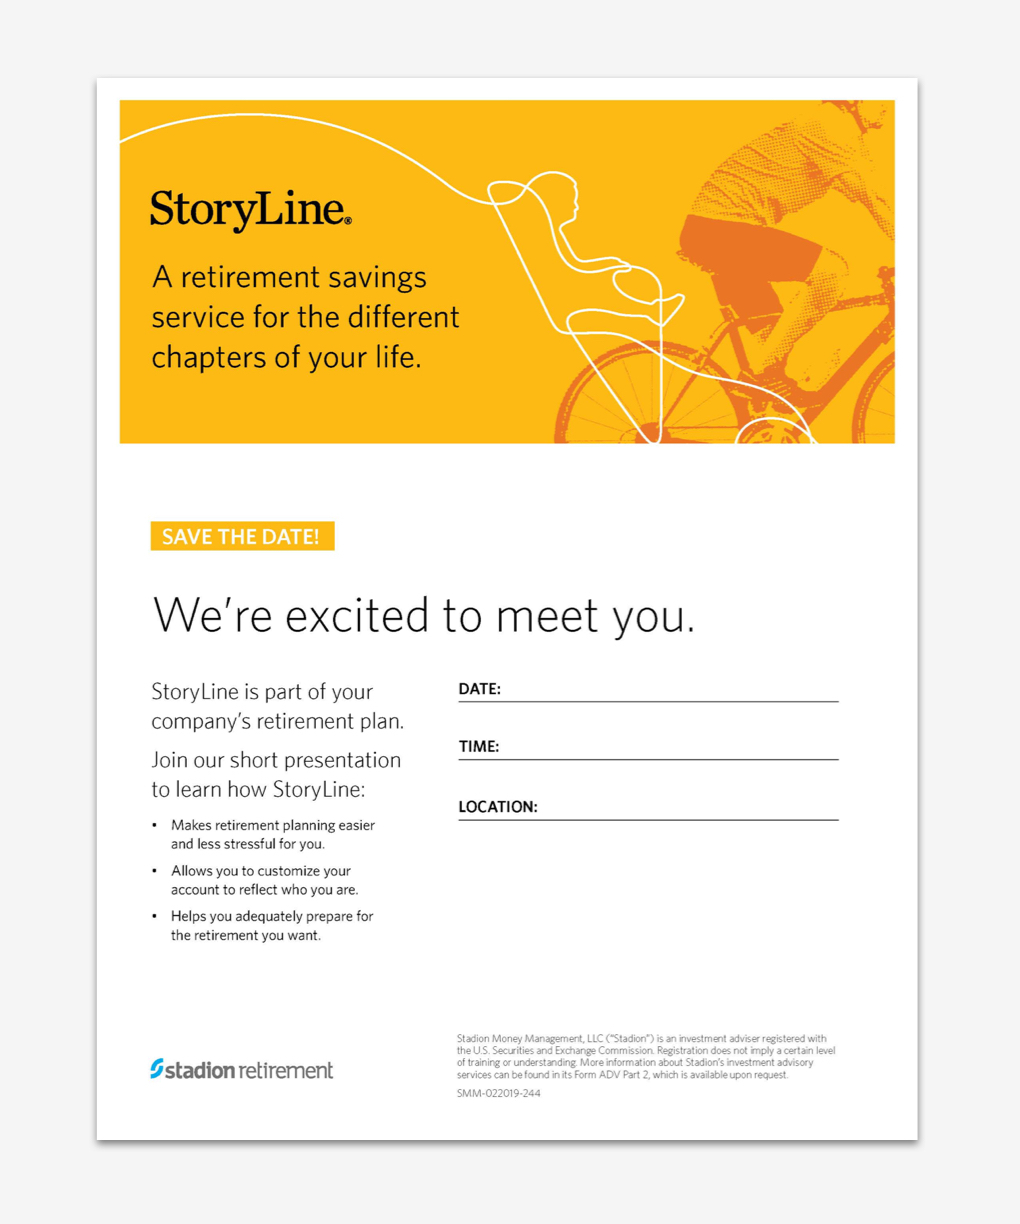 """Yellow enrollment flyer reads """"A retirement savings service for the different chapters of your life."""""""